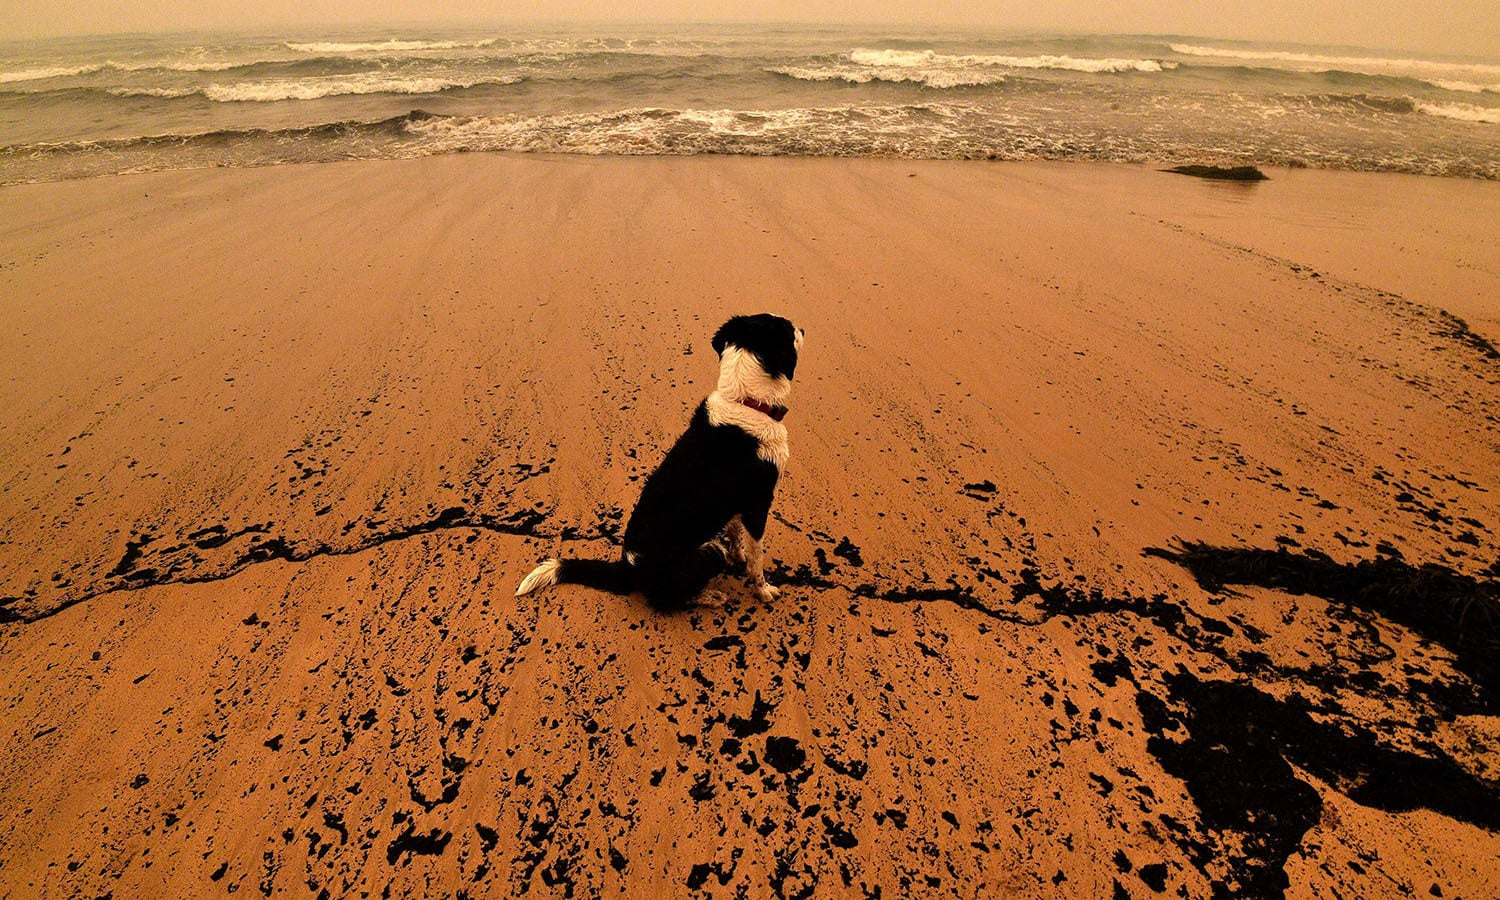 A dog sits amongst ash from bushfires washed up on a beach in Merimbula. — AFP